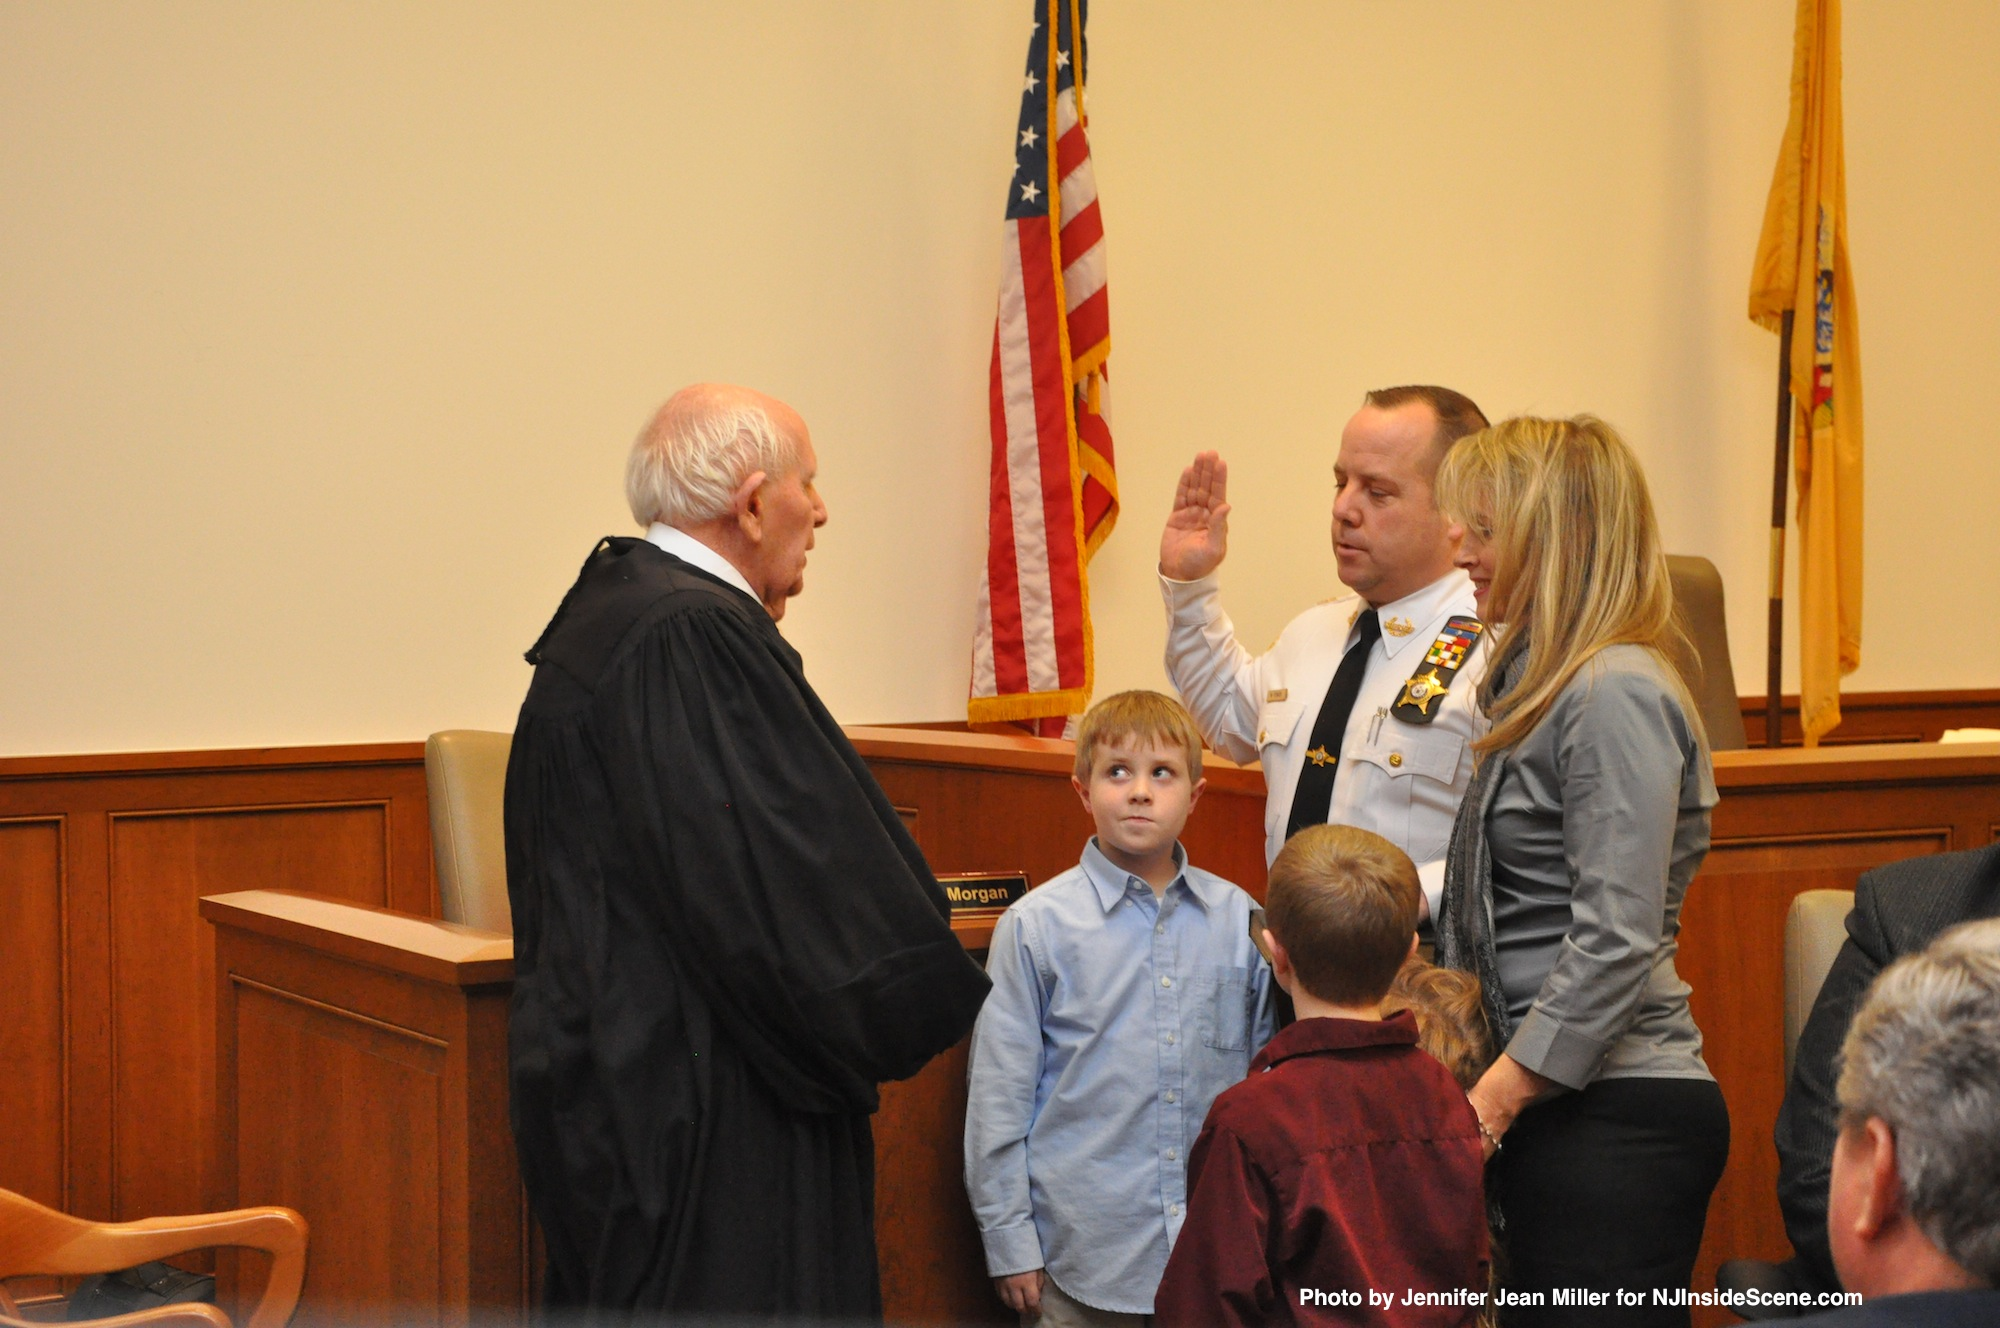 Sheriff Michael Strada, with his family, at the swearing in, with Judge Frederic Weber.